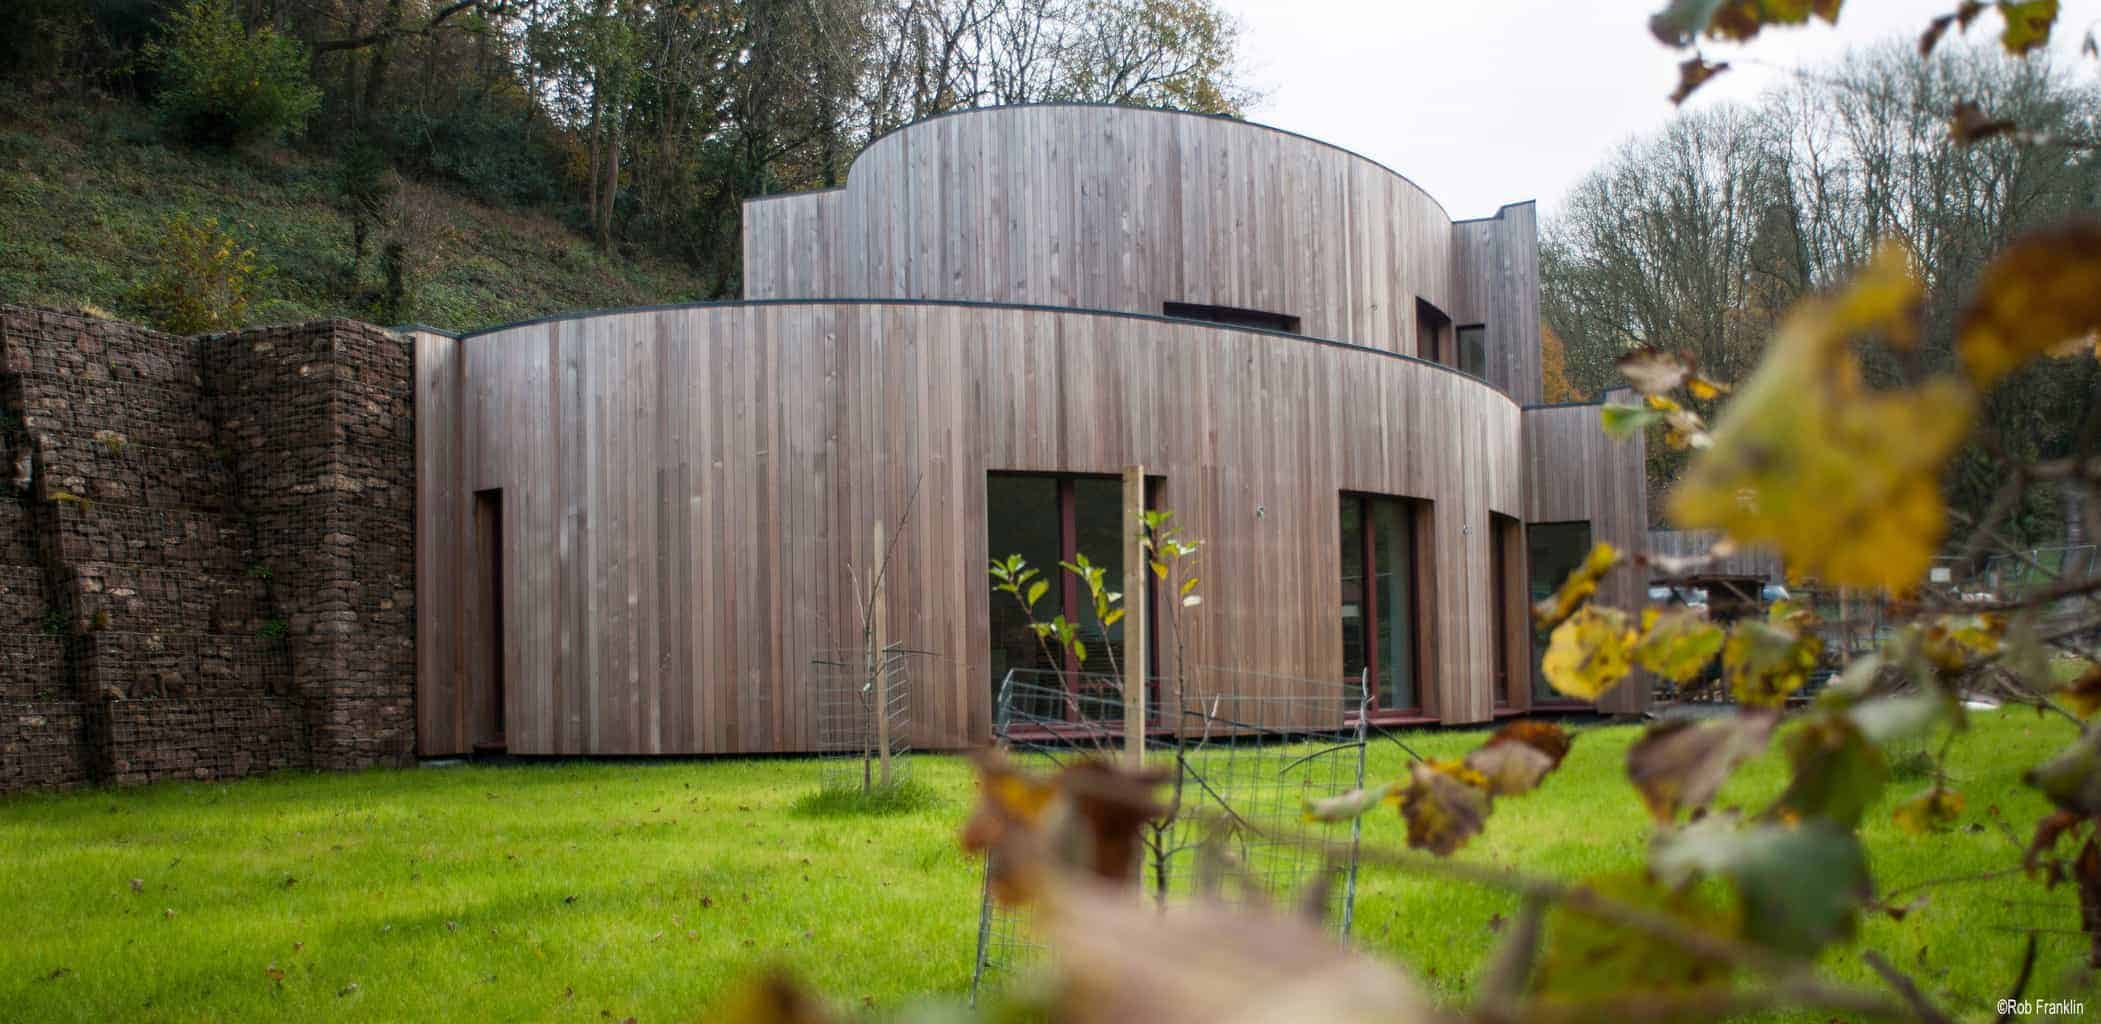 Somerset Passivhaus project with MVHR system designed and supplied by Green Building Store. Copyright: Rob Franklin